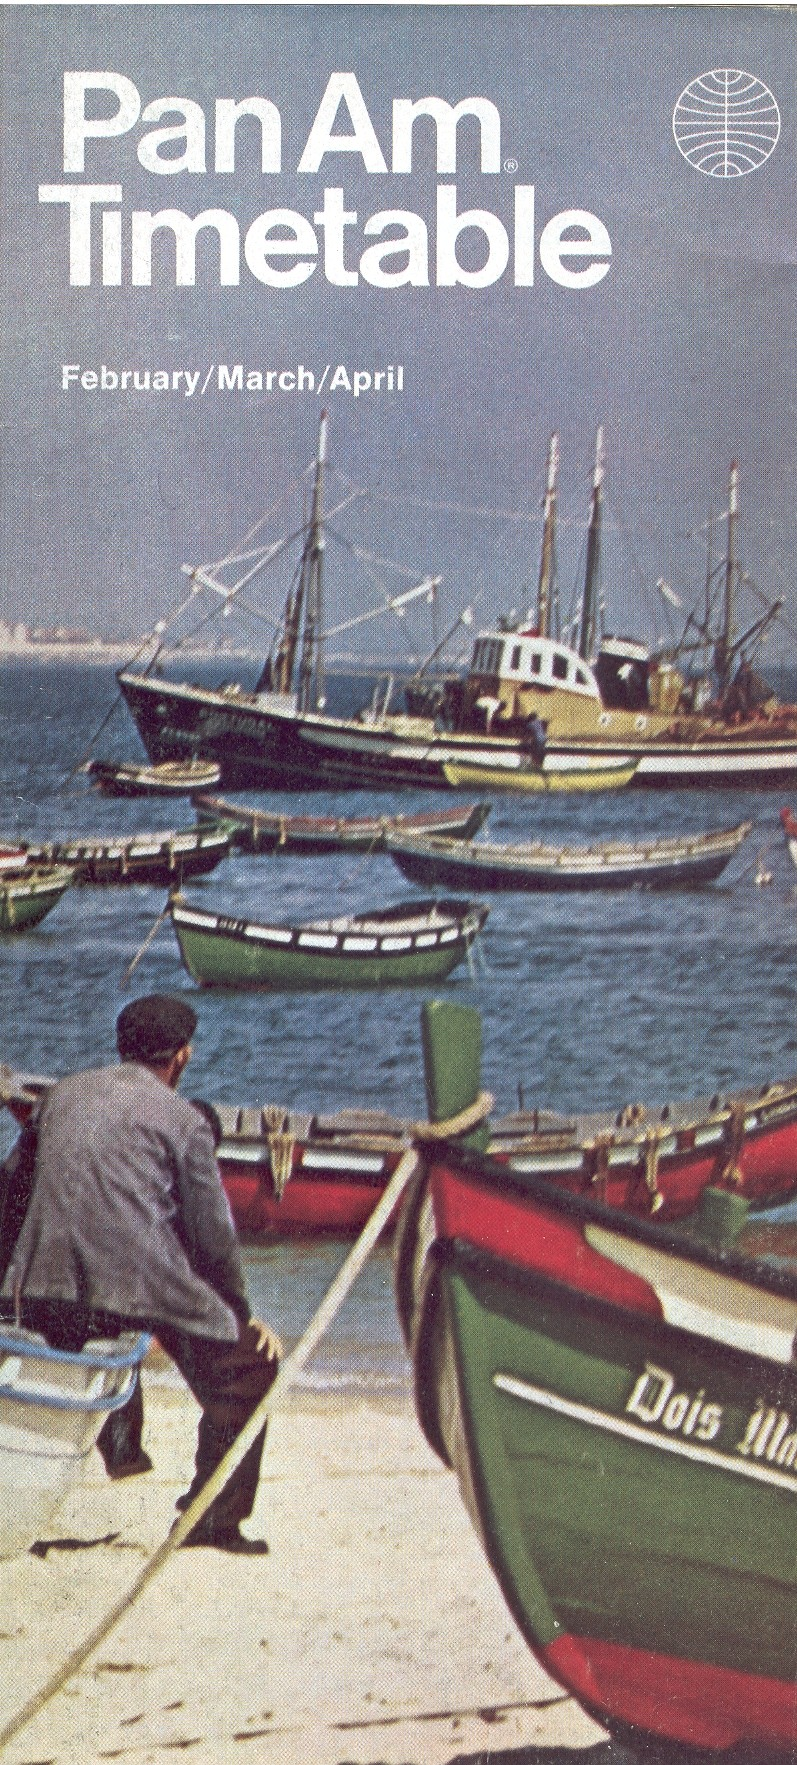 A Portuguese fishing scene was featured on the Feb1 - Apr 29 1972 Pan Am timetable in the Helvetica style.